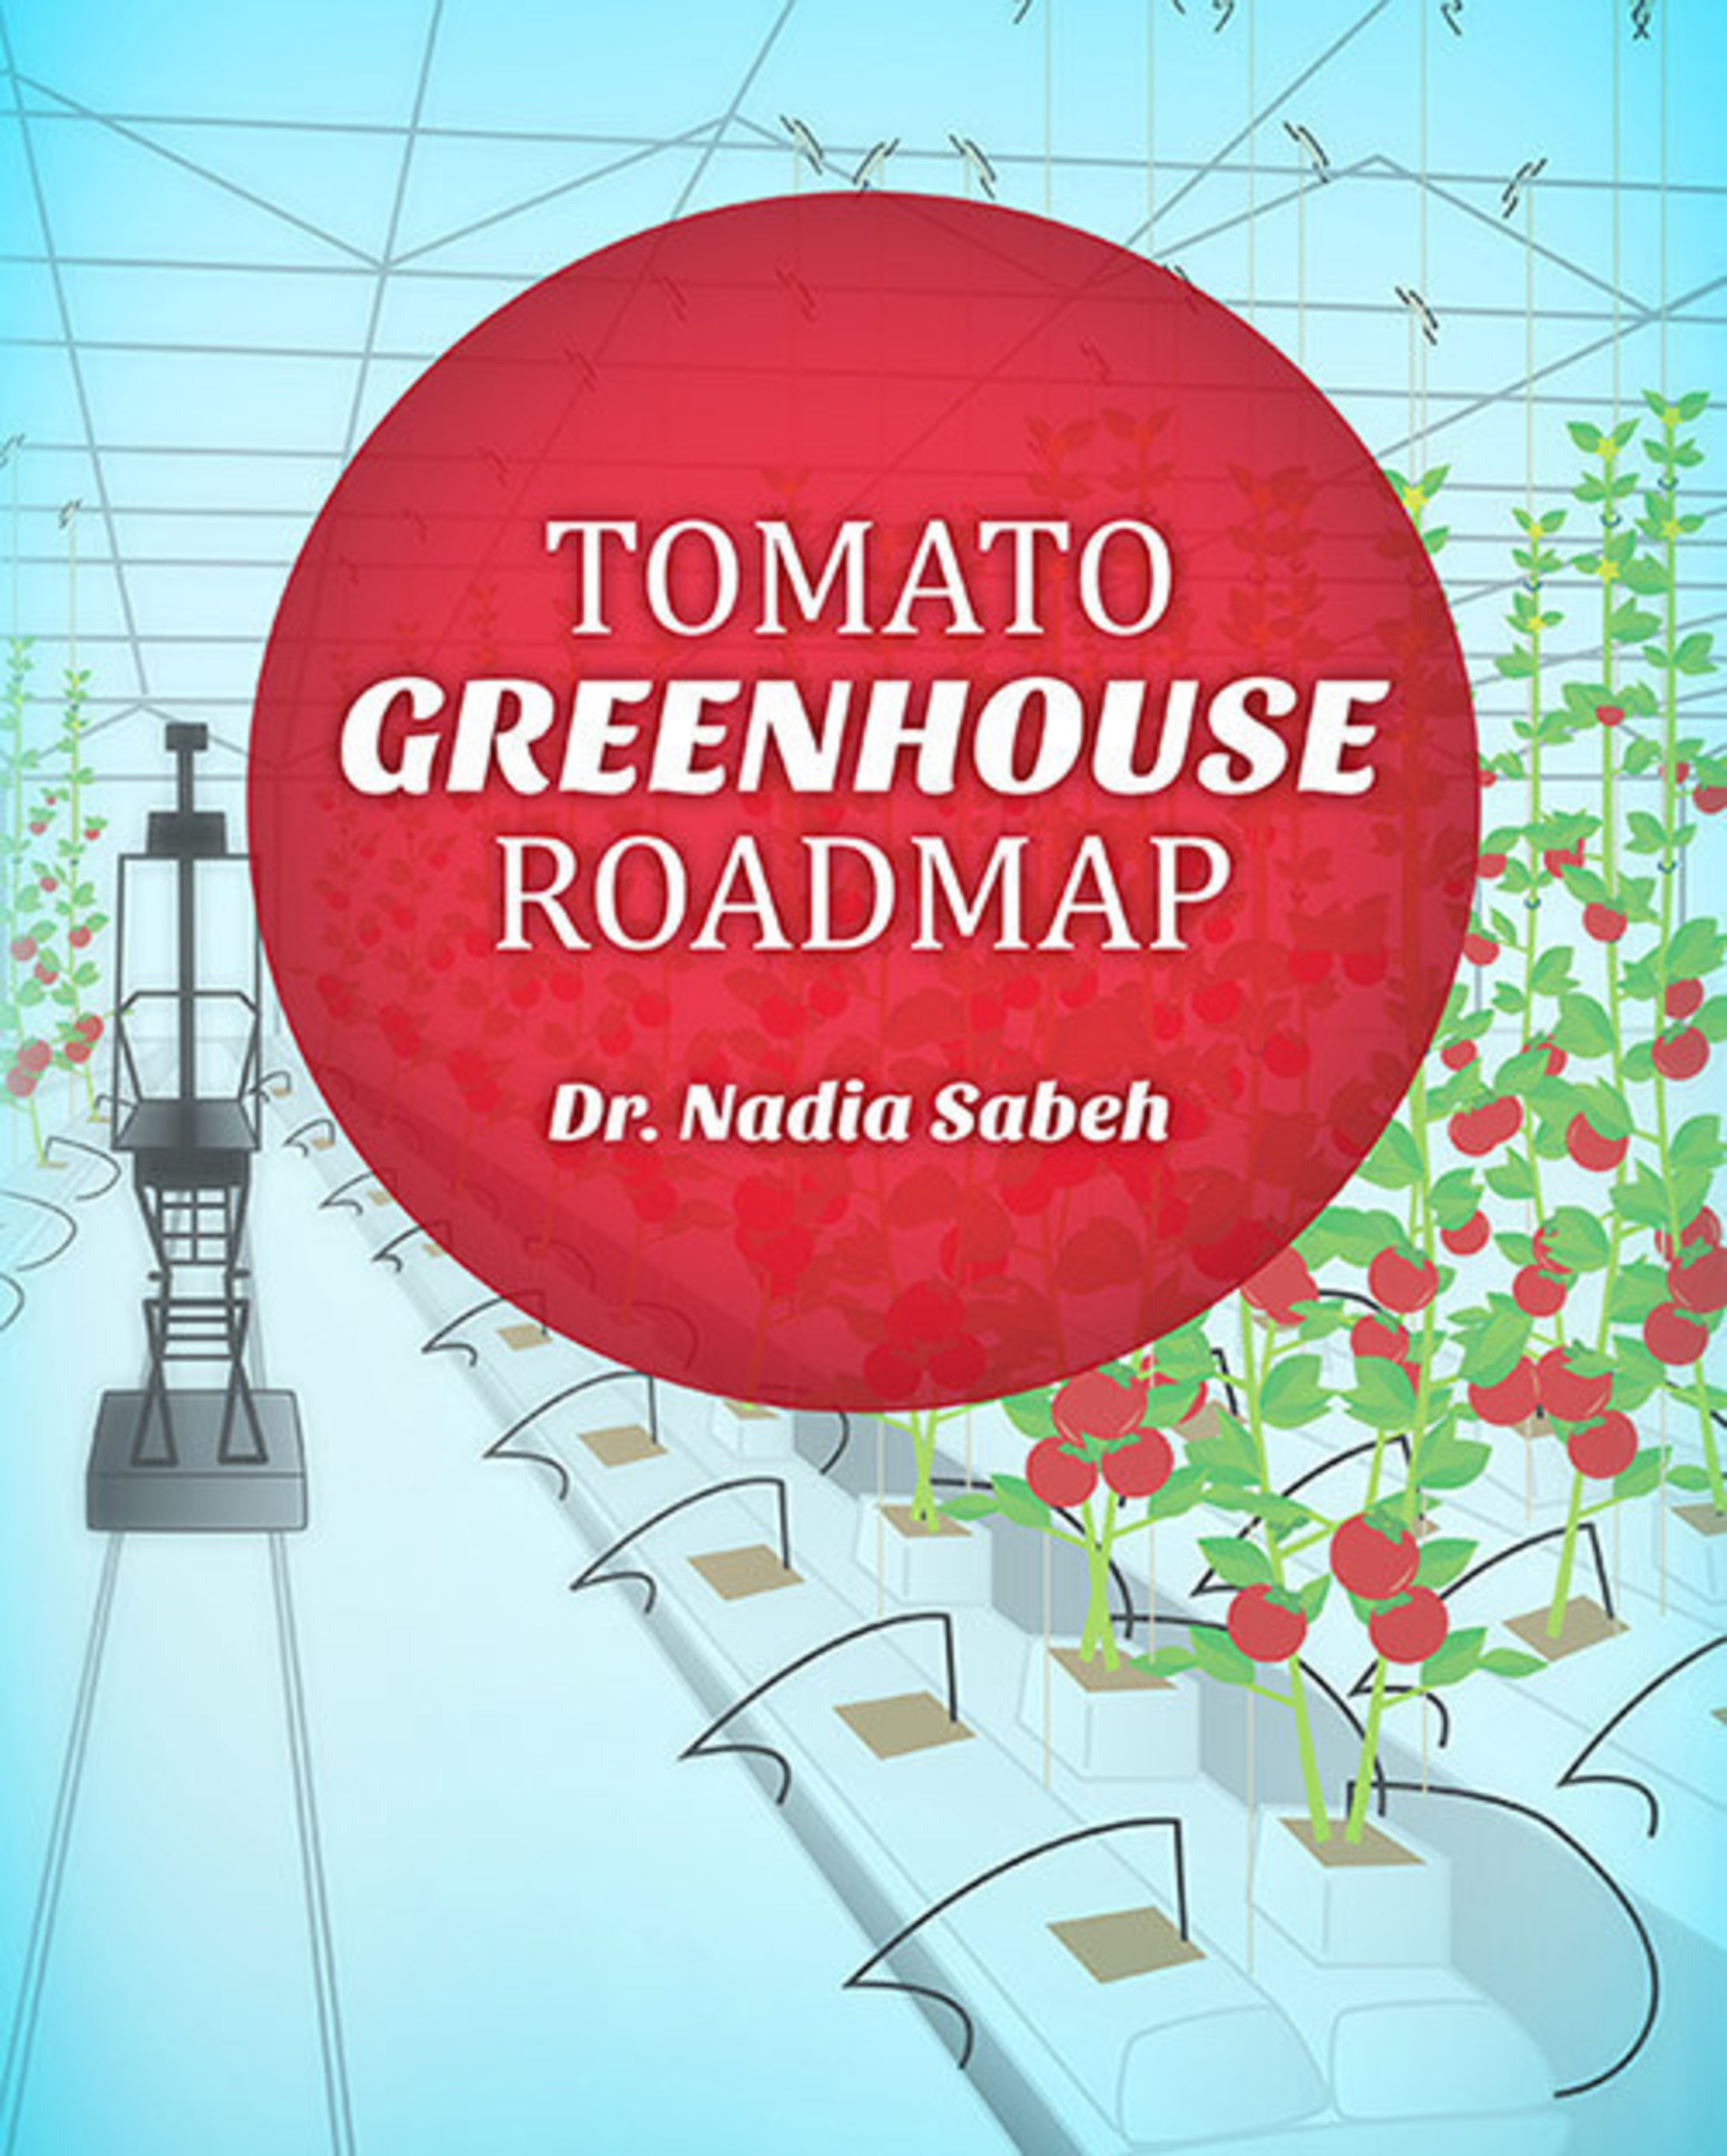 'Tomato Greenhouse Roadmap' from Hort Americas is a guide book that provides details on investing